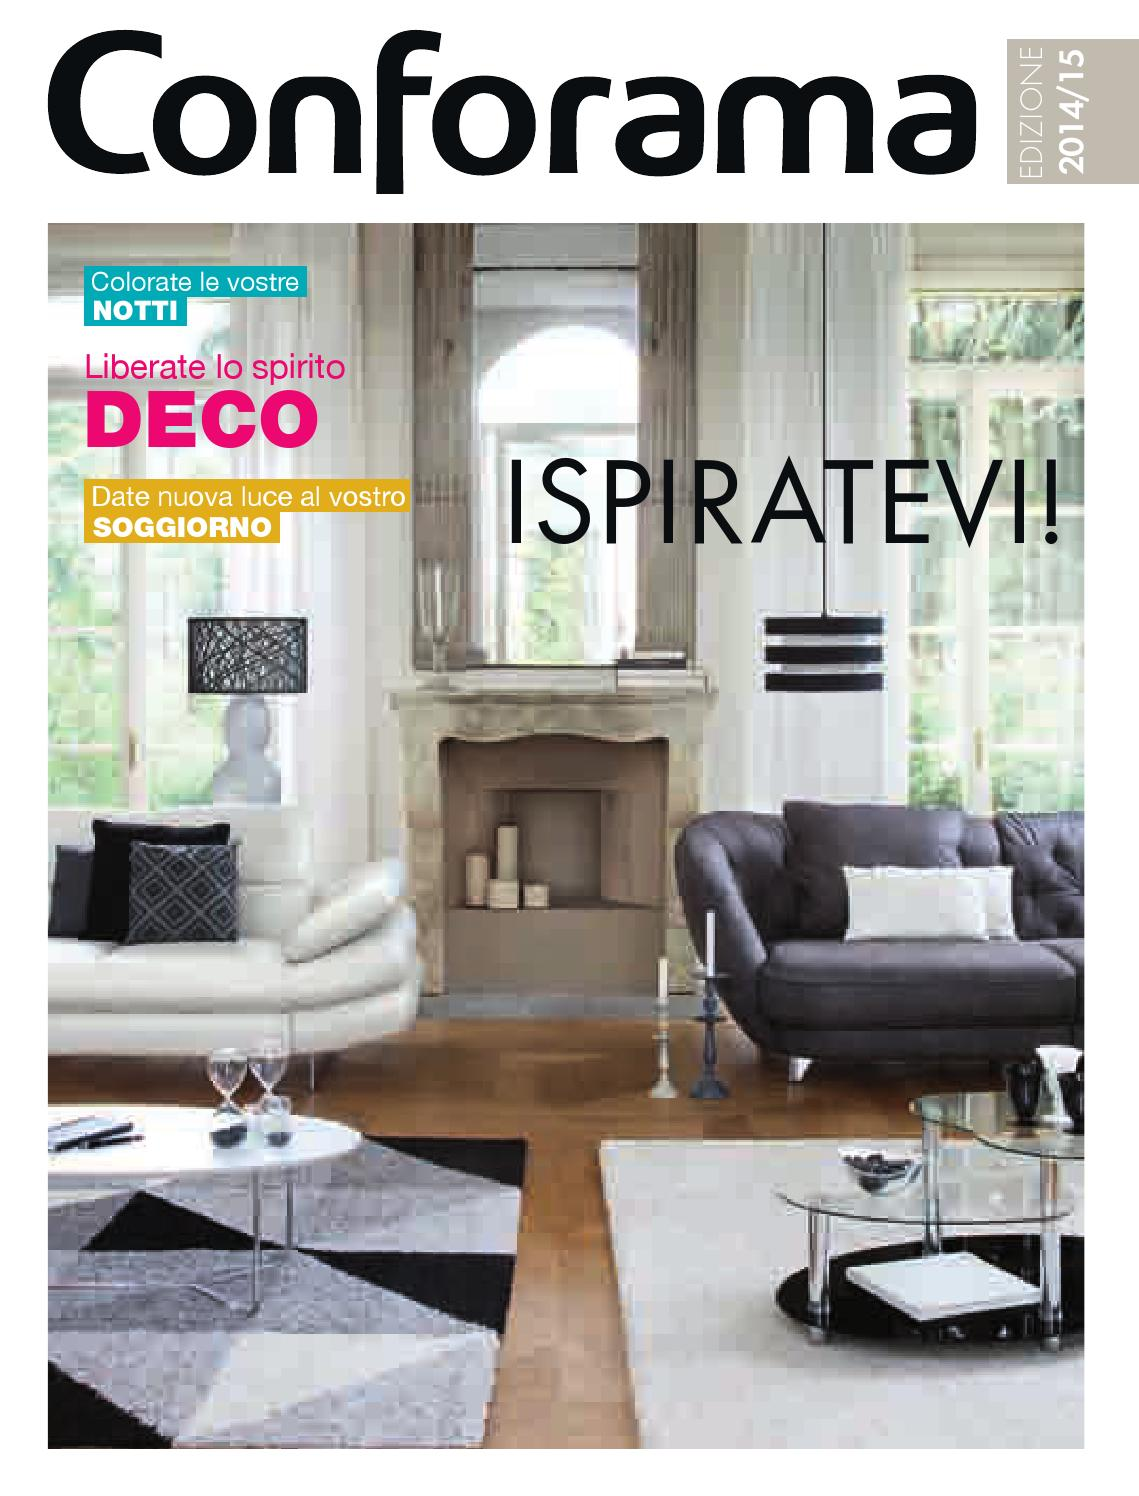 Conforama catalogo 2014confo by masura - issuu